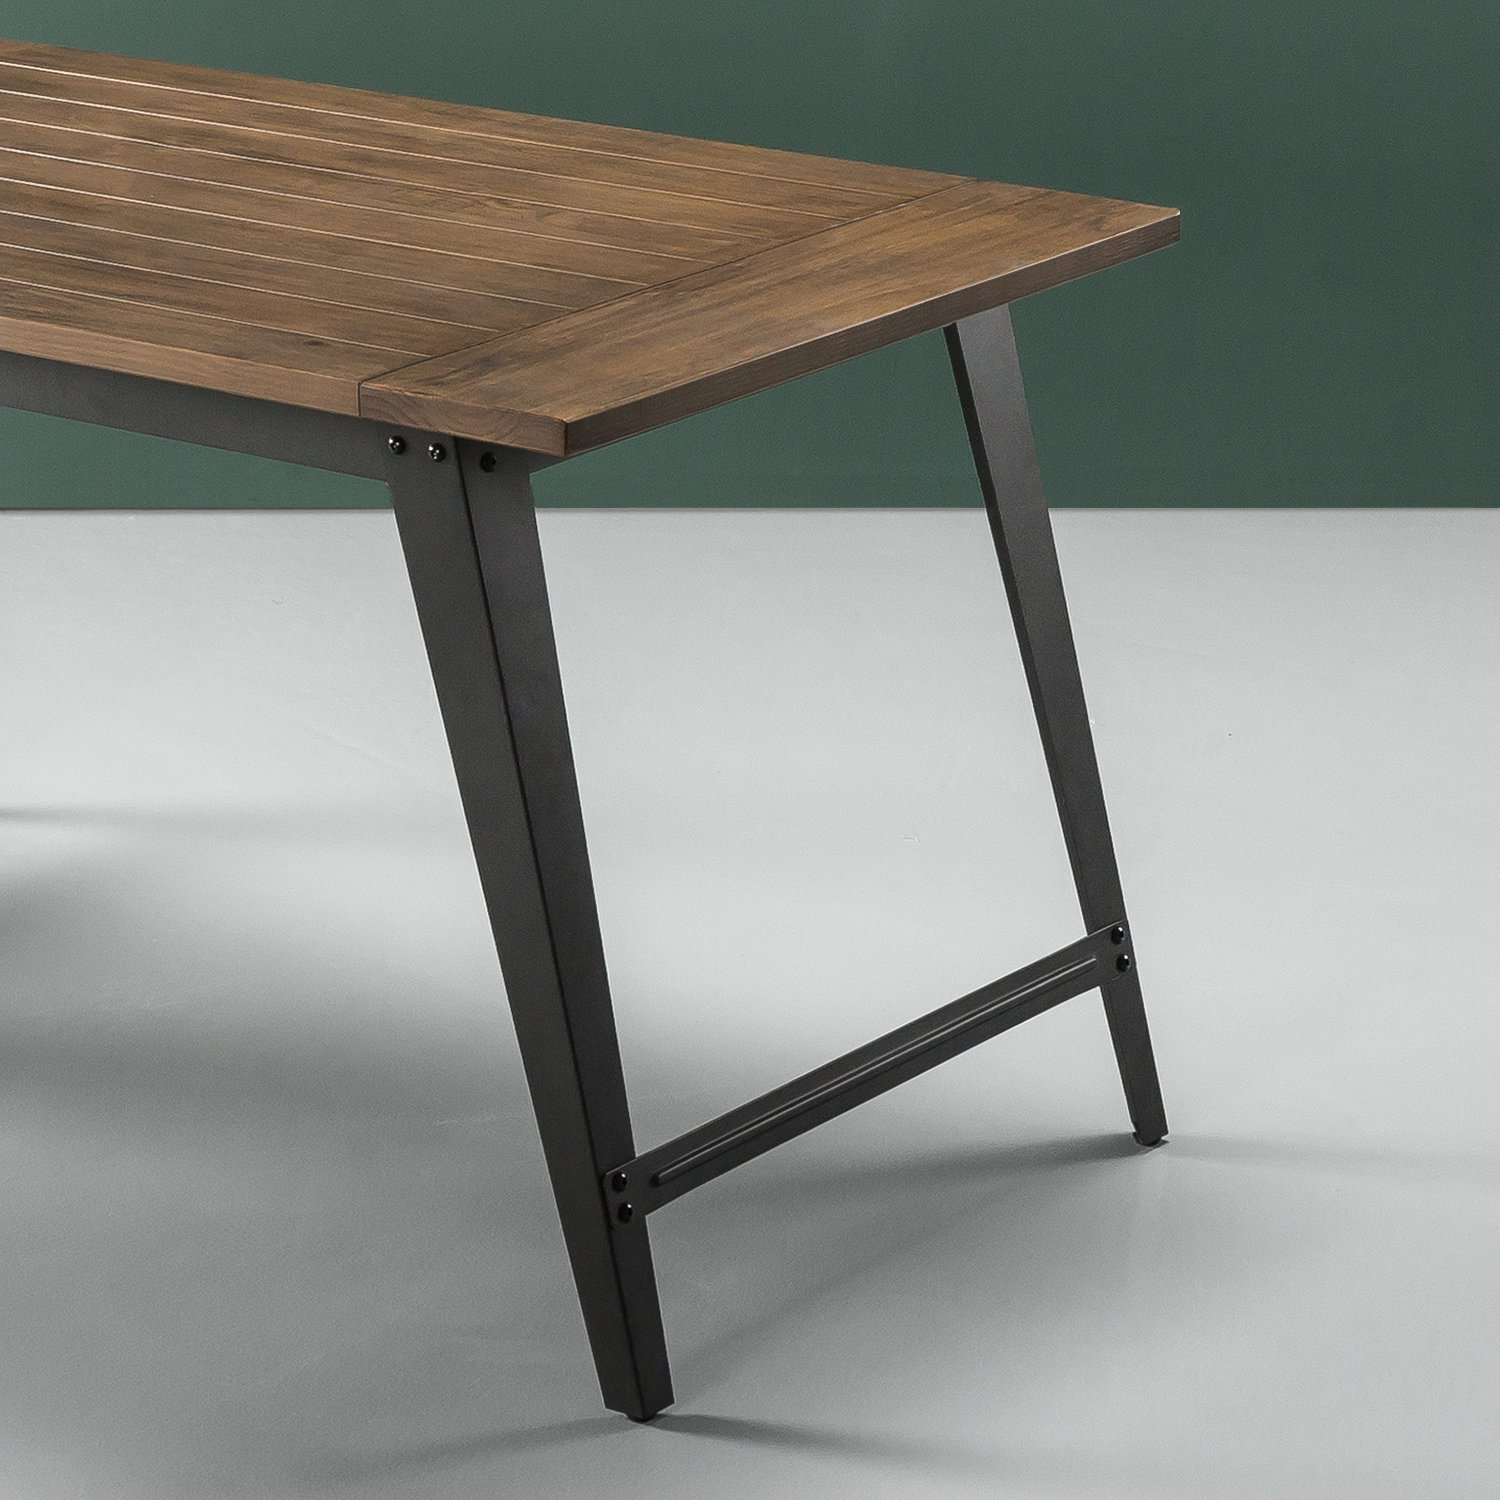 Zinus Donna Wood and Metal Dining Table by Zinus (Image #4)